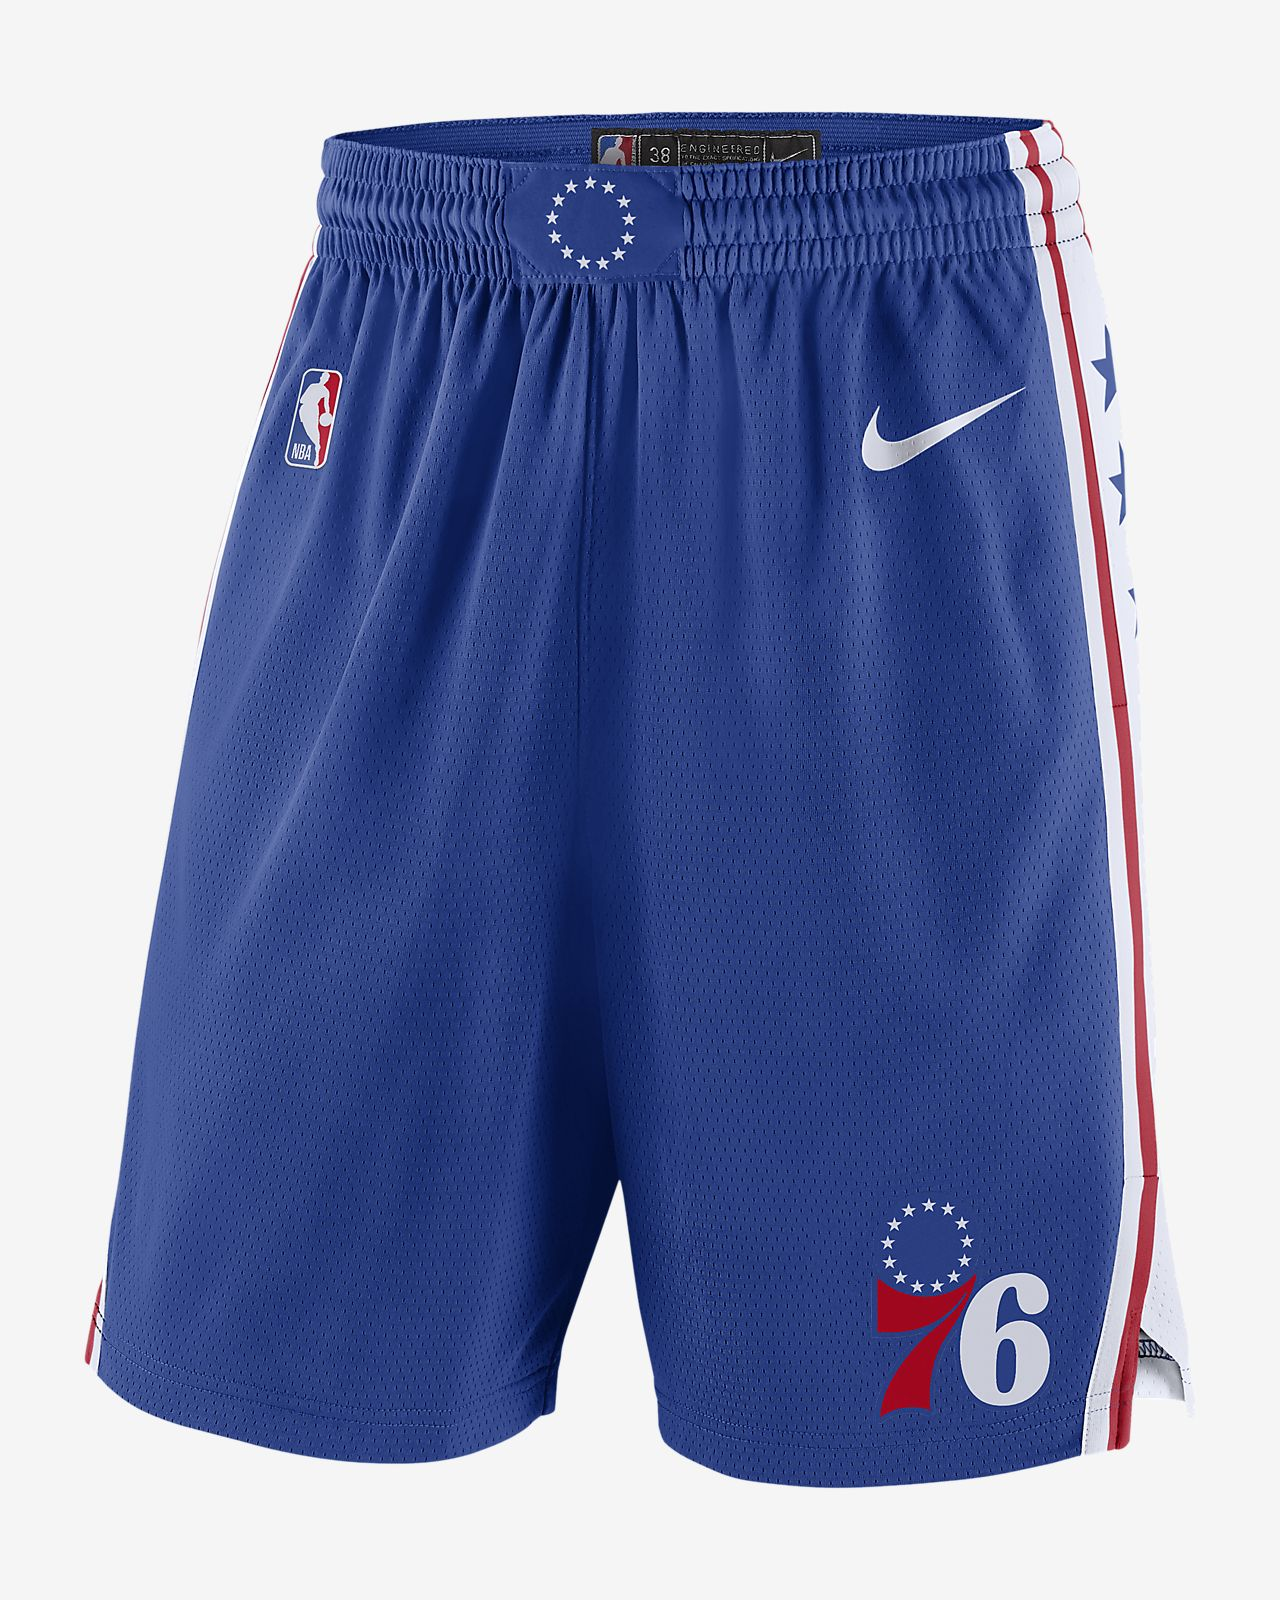 Philadelphia 76ers Icon Edition Swingman Nike NBA-Shorts für Herren